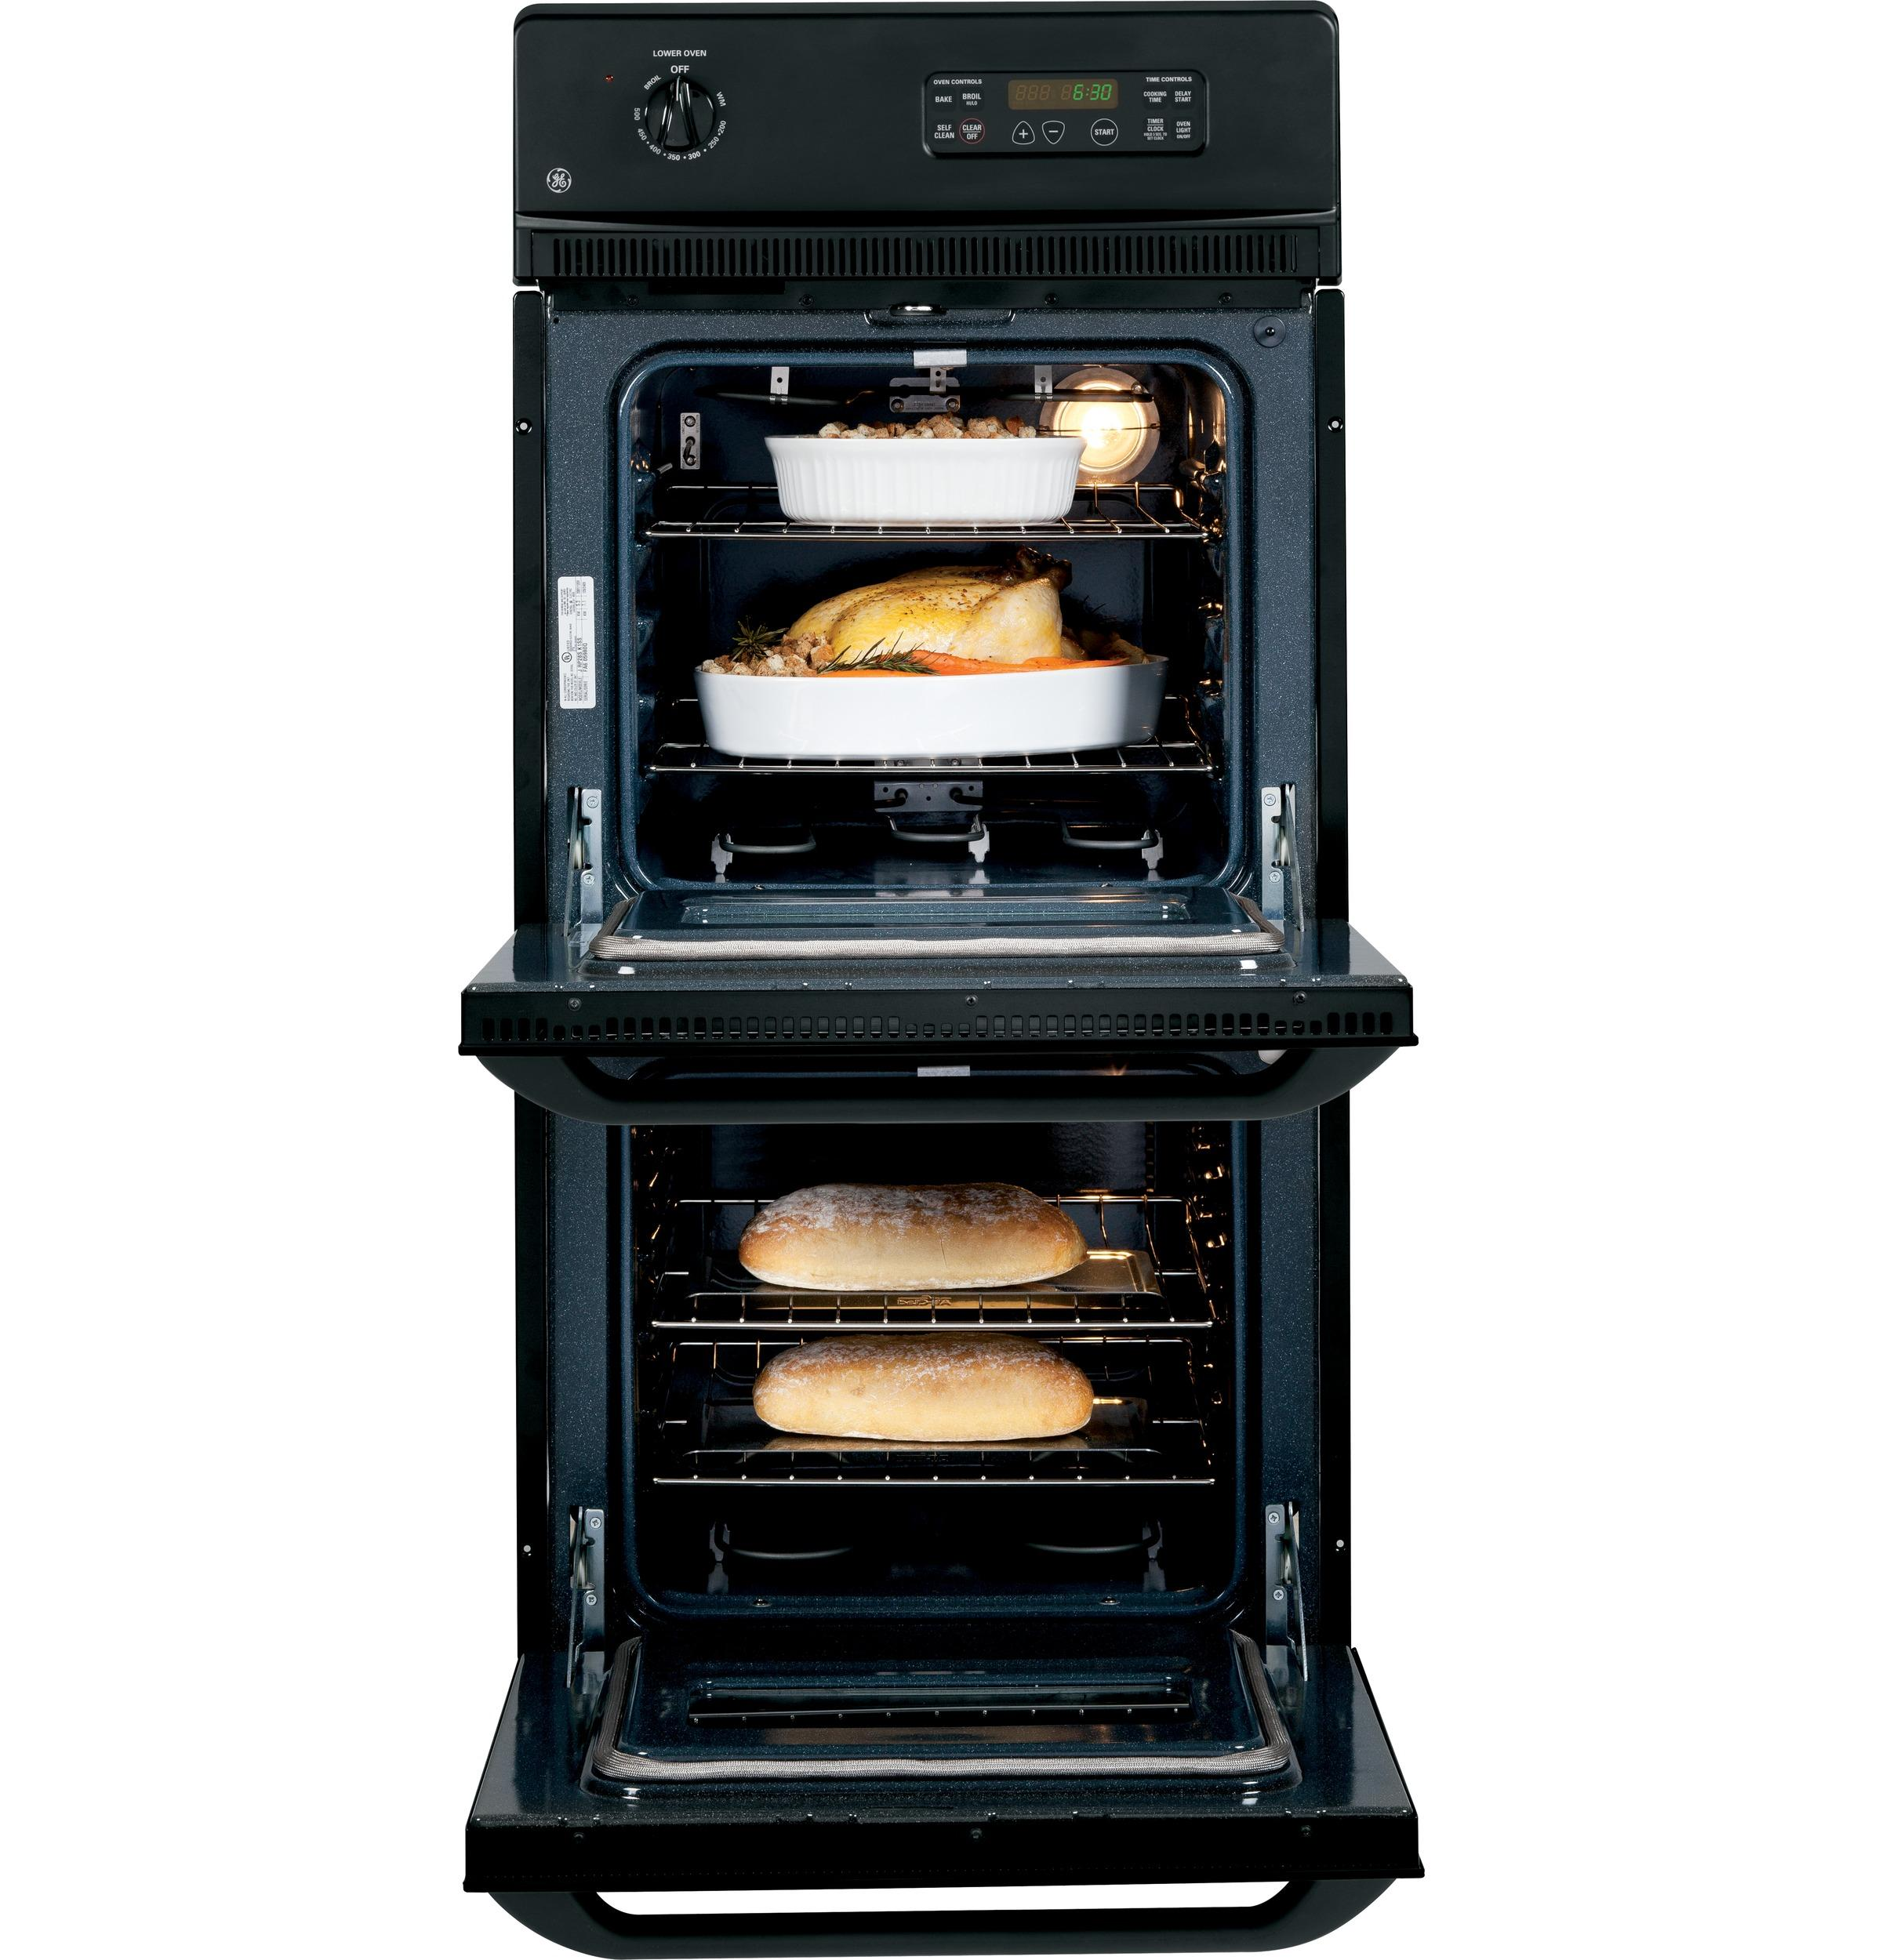 Jrp28skss General Electric Jrp28skss Double Wall Ovens